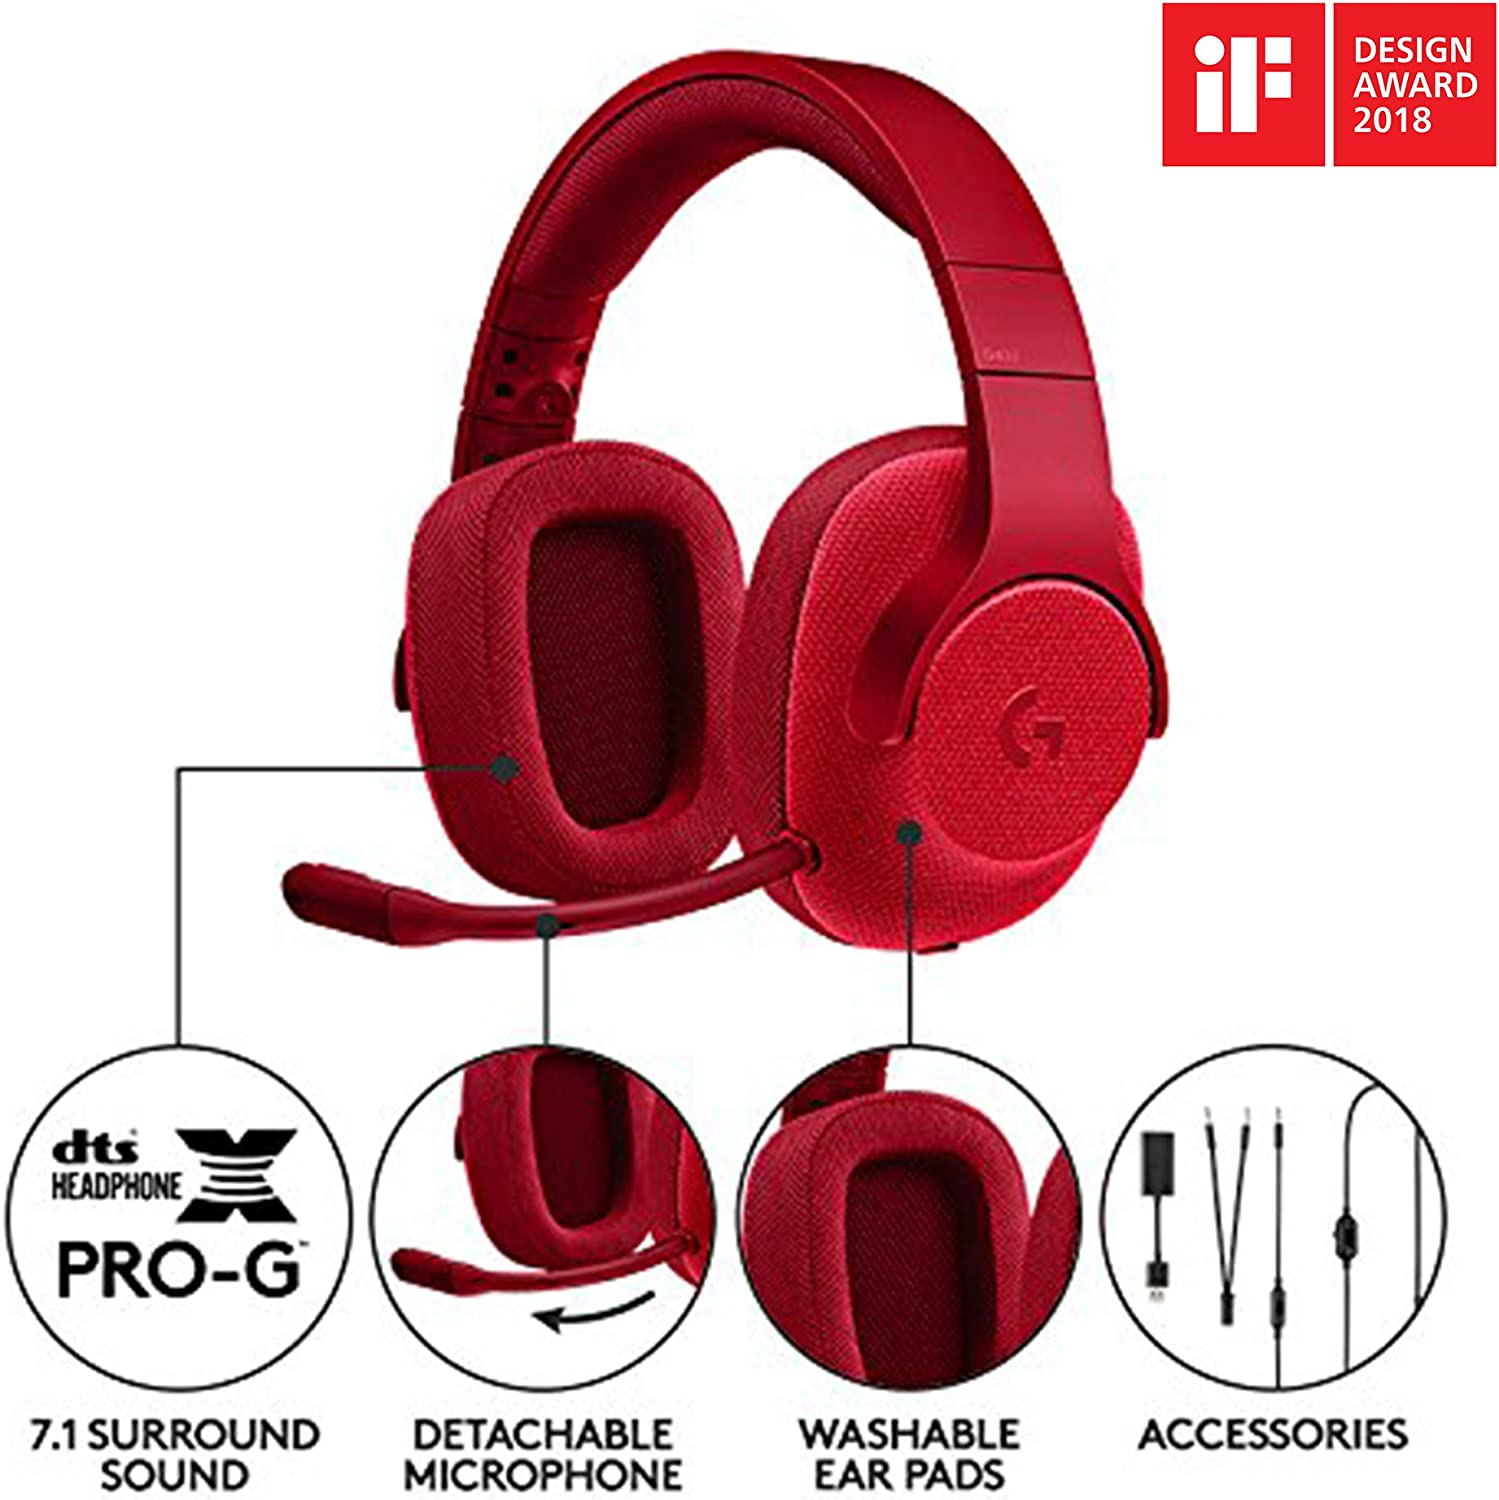 Logitech G433 Wired Gaming Headset, 7.1 Surround Sound for PC, Xbox One, PS4, Switch, Mobile Red & MX Anywhere 2 AMZ Wireless Bluetooth Mouse for